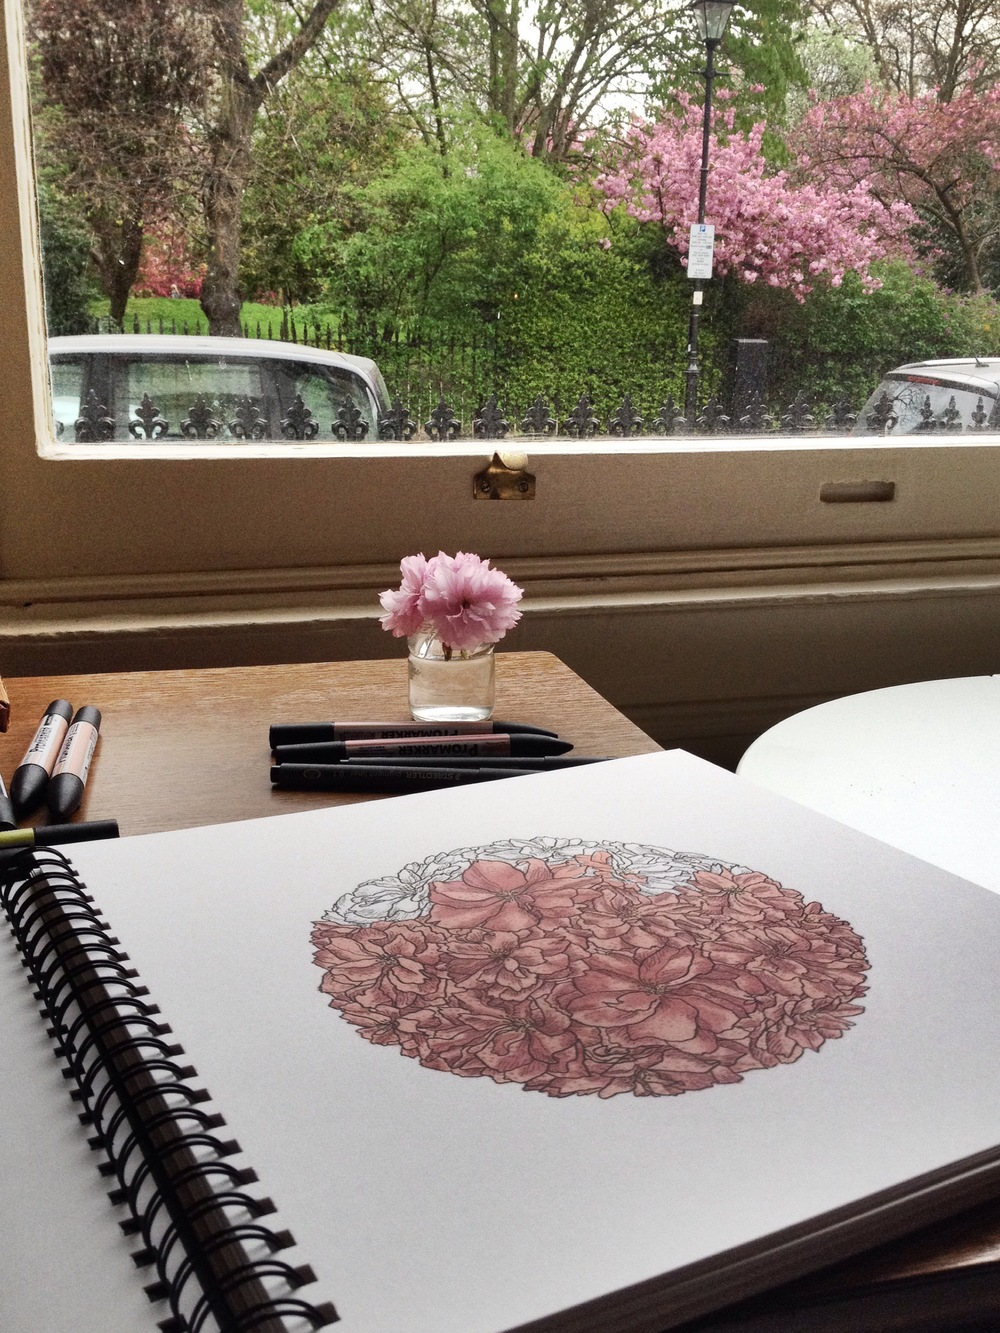 Blossoms inside and out